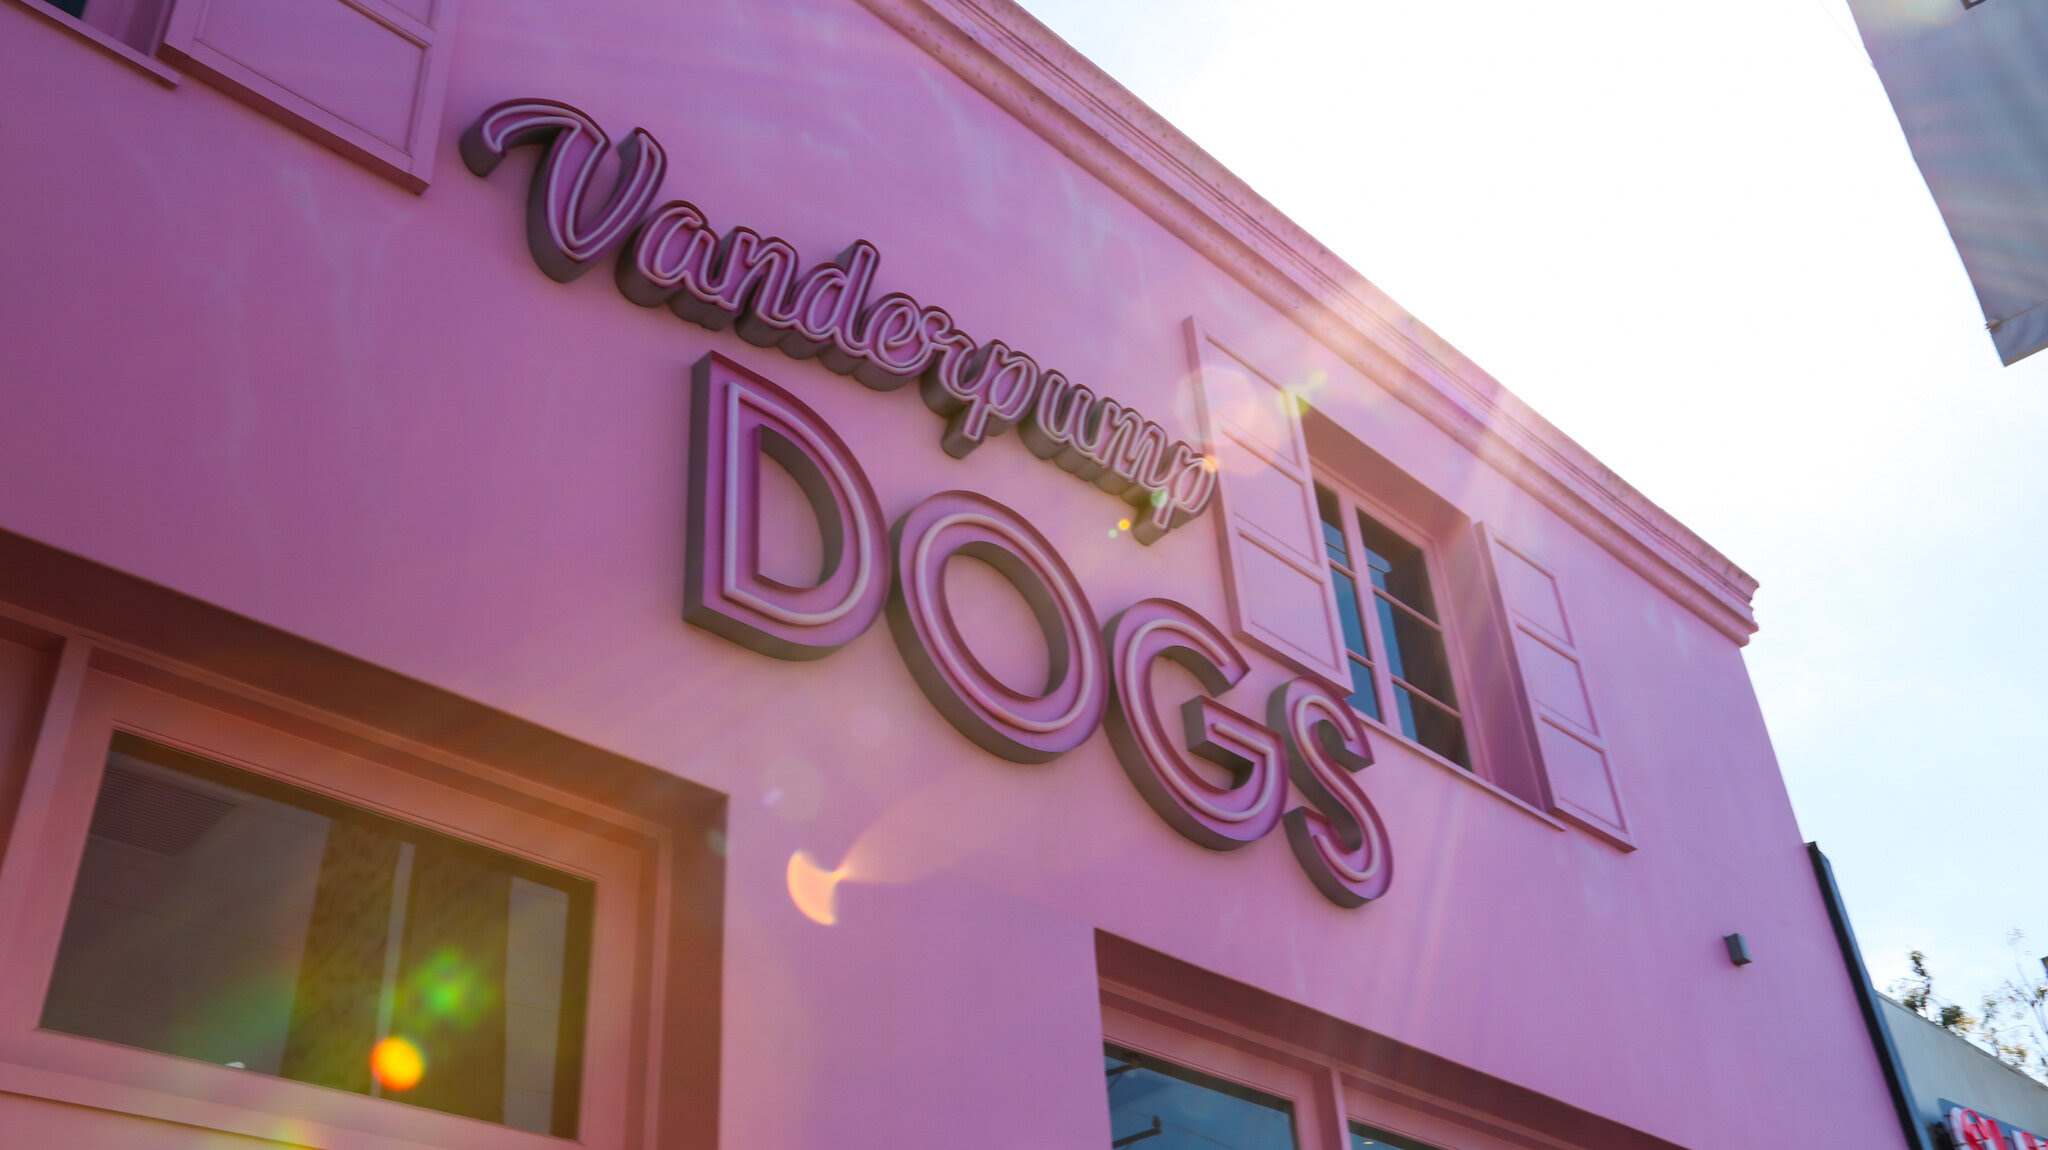 A photo of the Vanderpump Dog Foundation